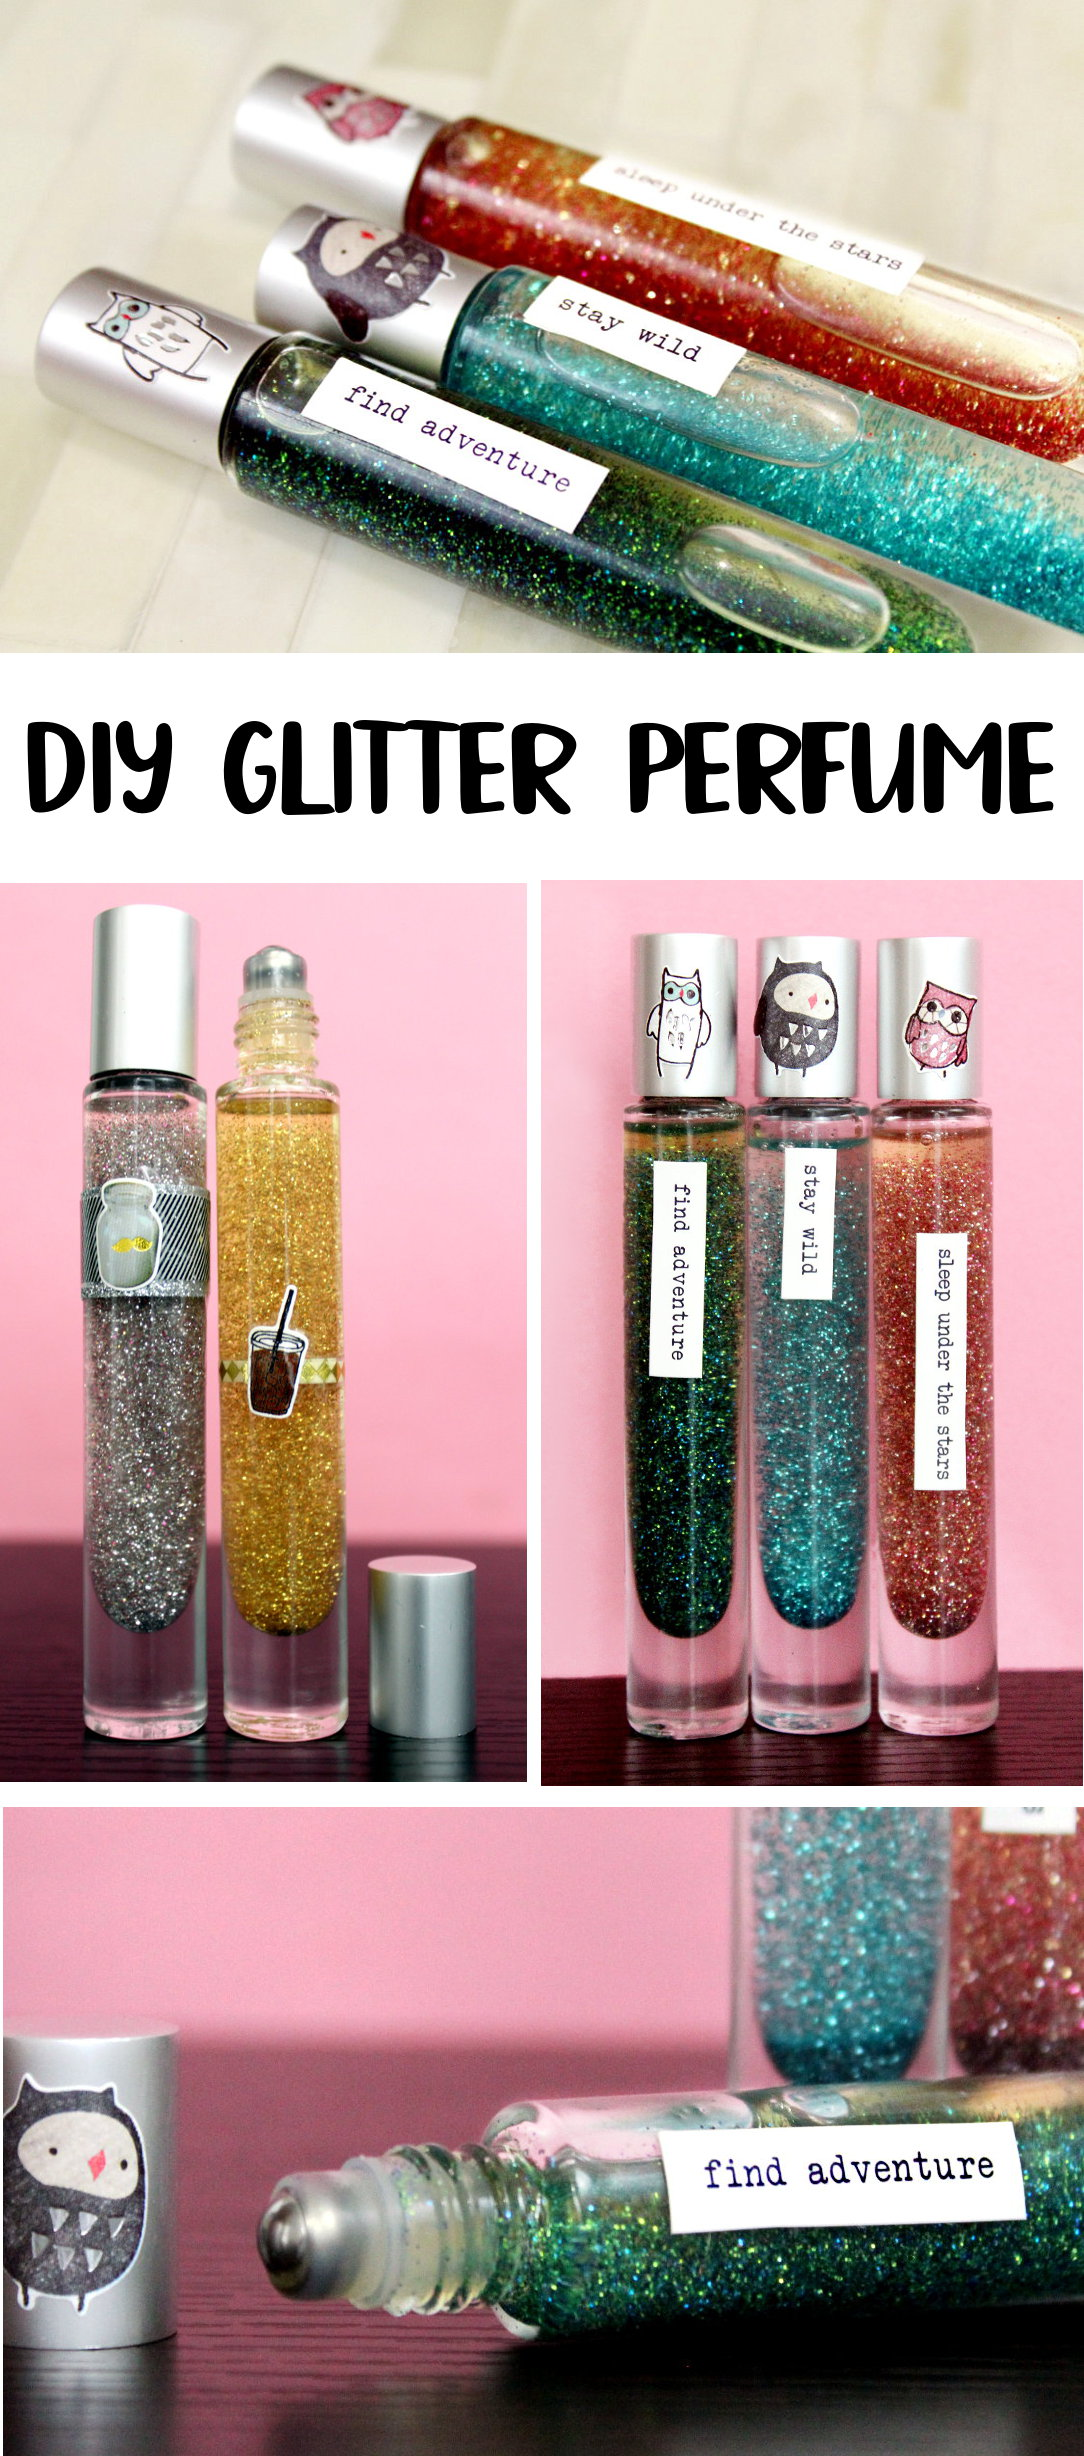 DIY Glitter Perfume for Your Inner Rockstar! True glitter fans continue to discover glitter EVERYWHERE - even after an OCD house cleaning. If you're a fan of glitter (and you totally know what I mean!) then you simply cannot pass up this tutorial for making your own awesome DIY glitter perfume!